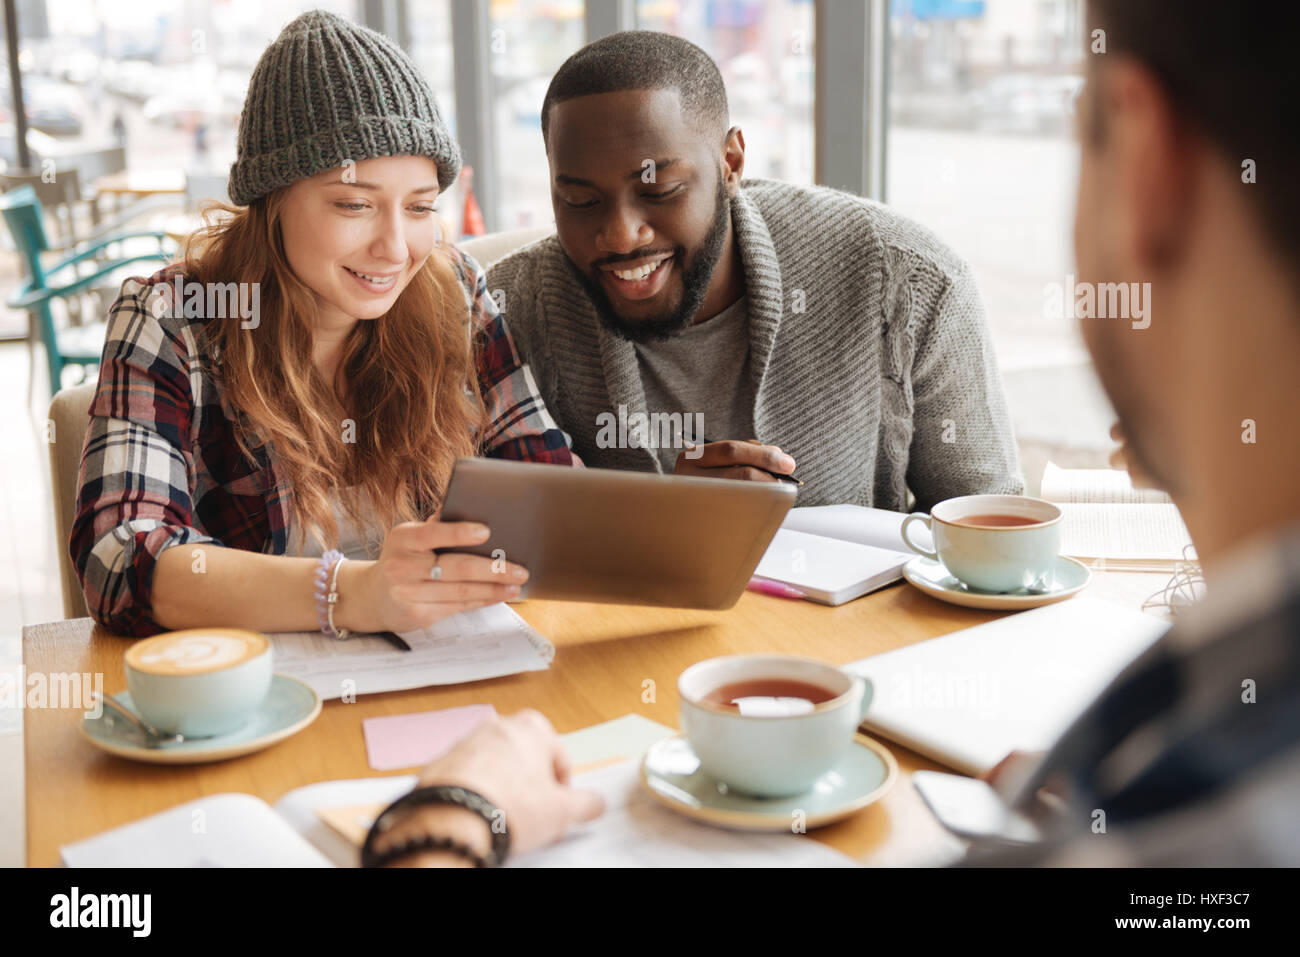 Youngsters sitting with tablet in the cafe - Stock Image